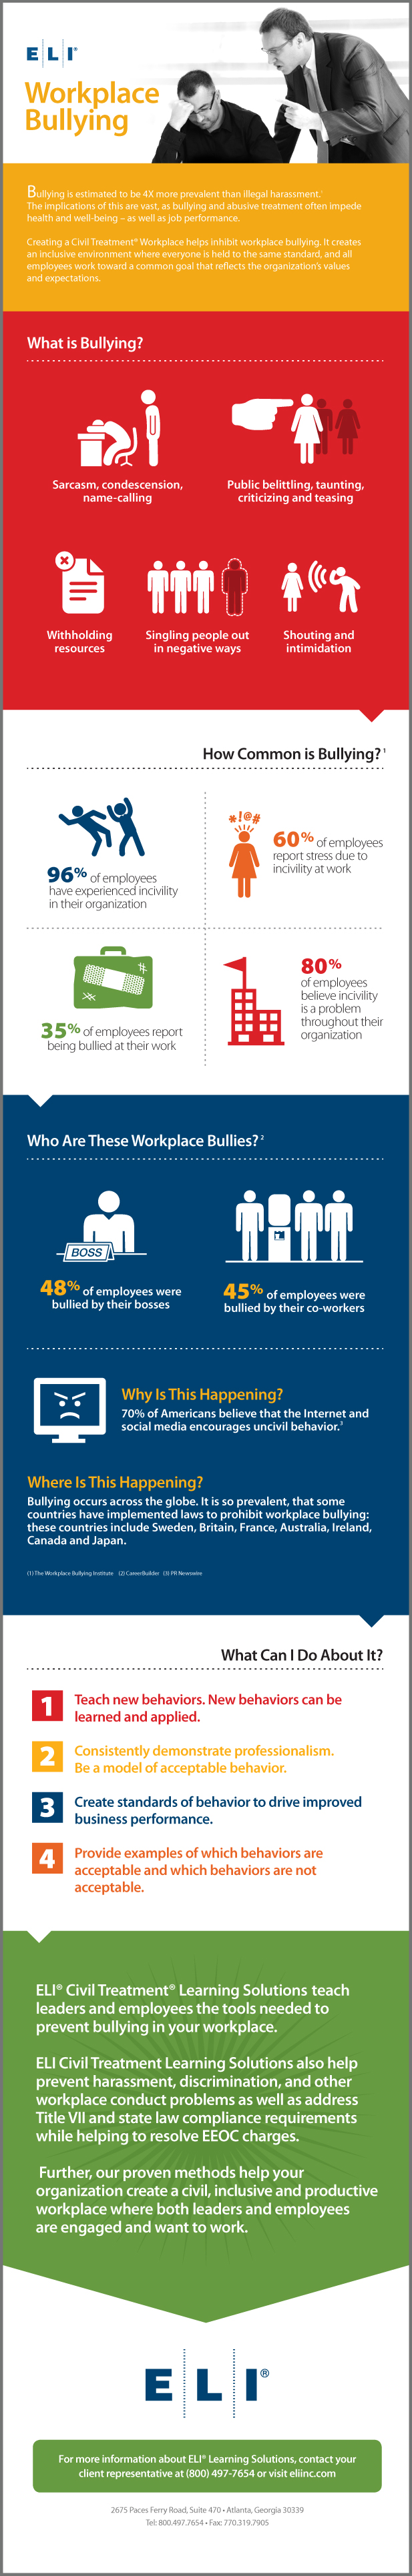 Workplace Bullying Facts